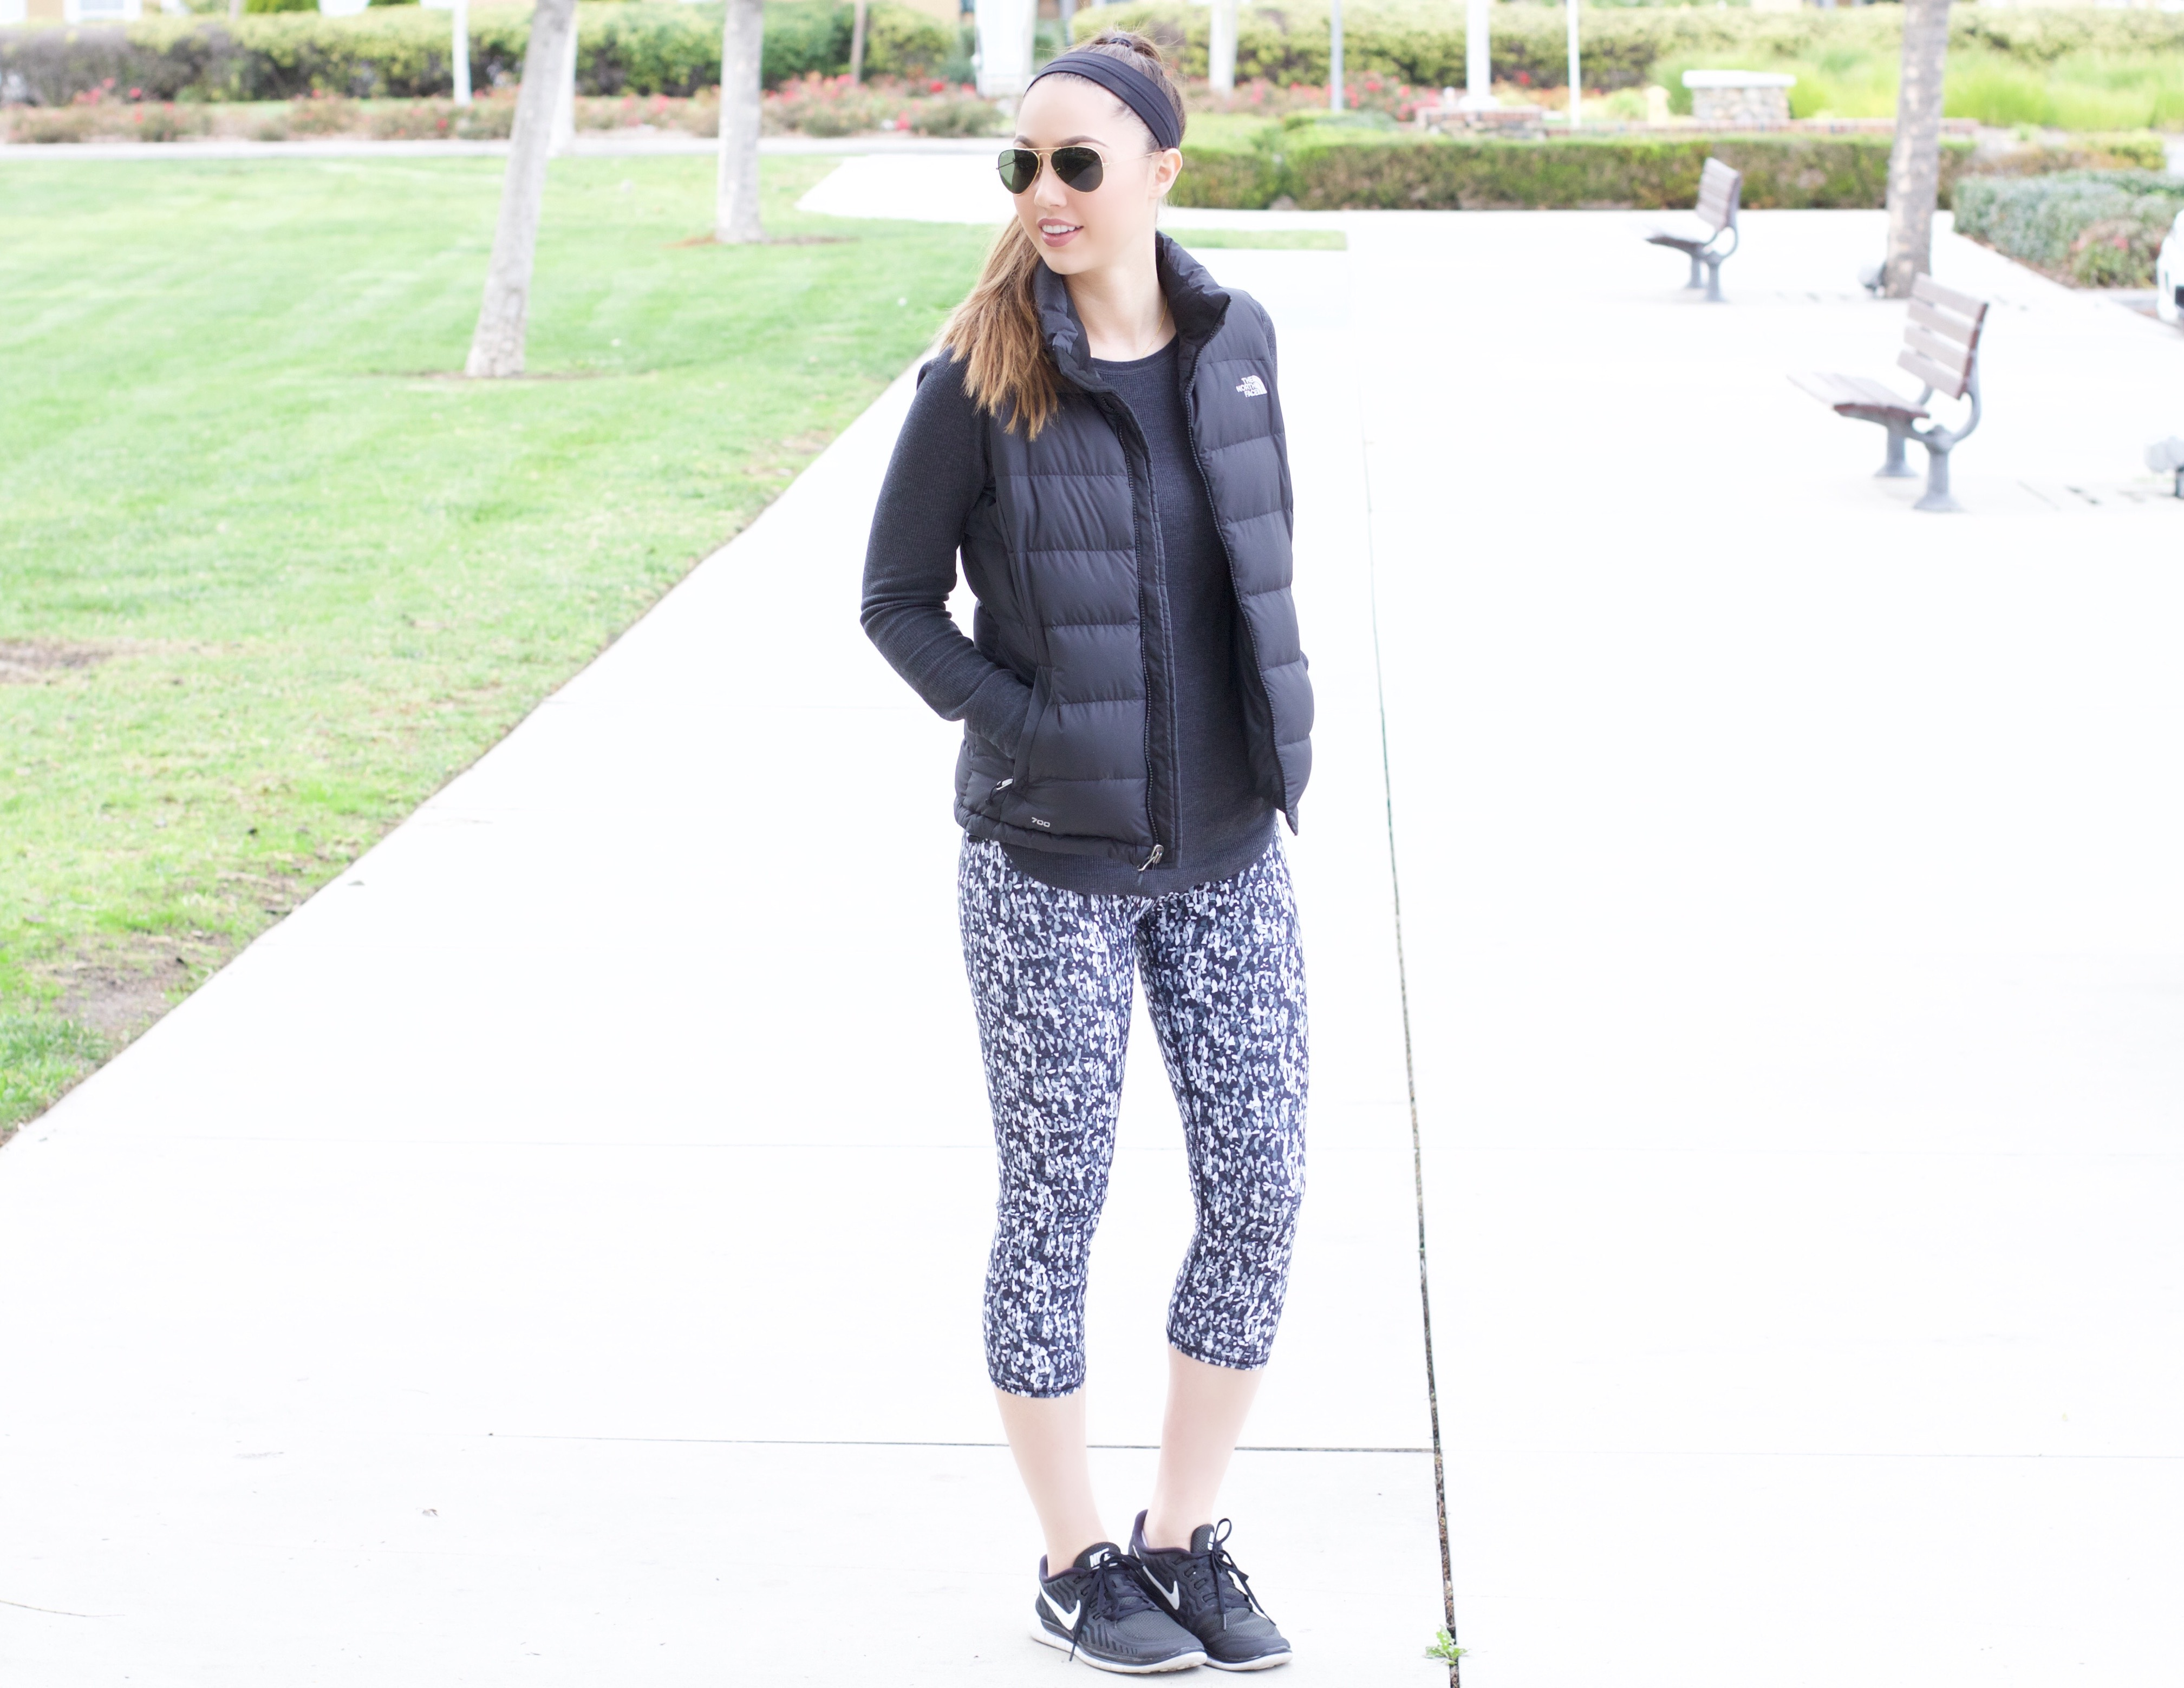 chic workout outfit